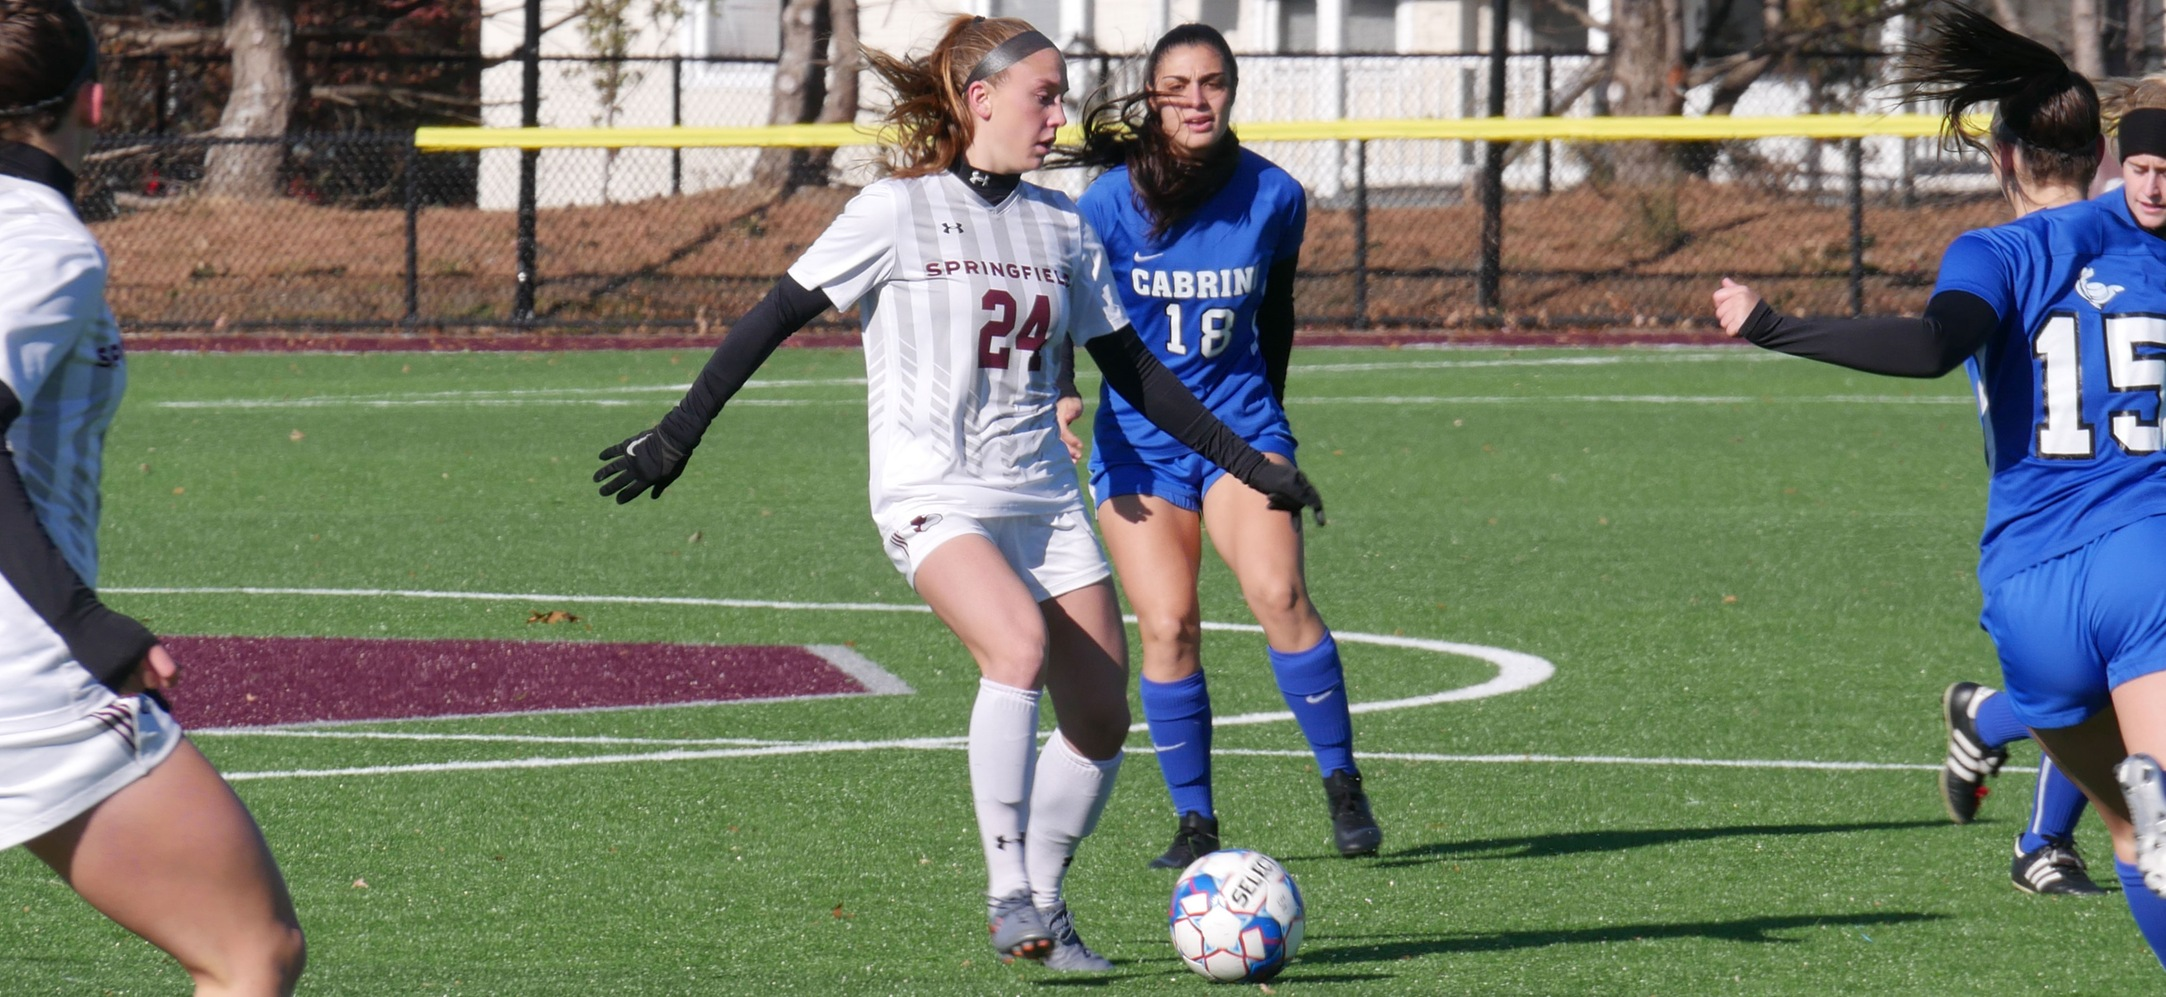 Women's Soccer Triumphs 3-2 in Double Overtime Battle With FDU-Florham in ECAC Quartefinal